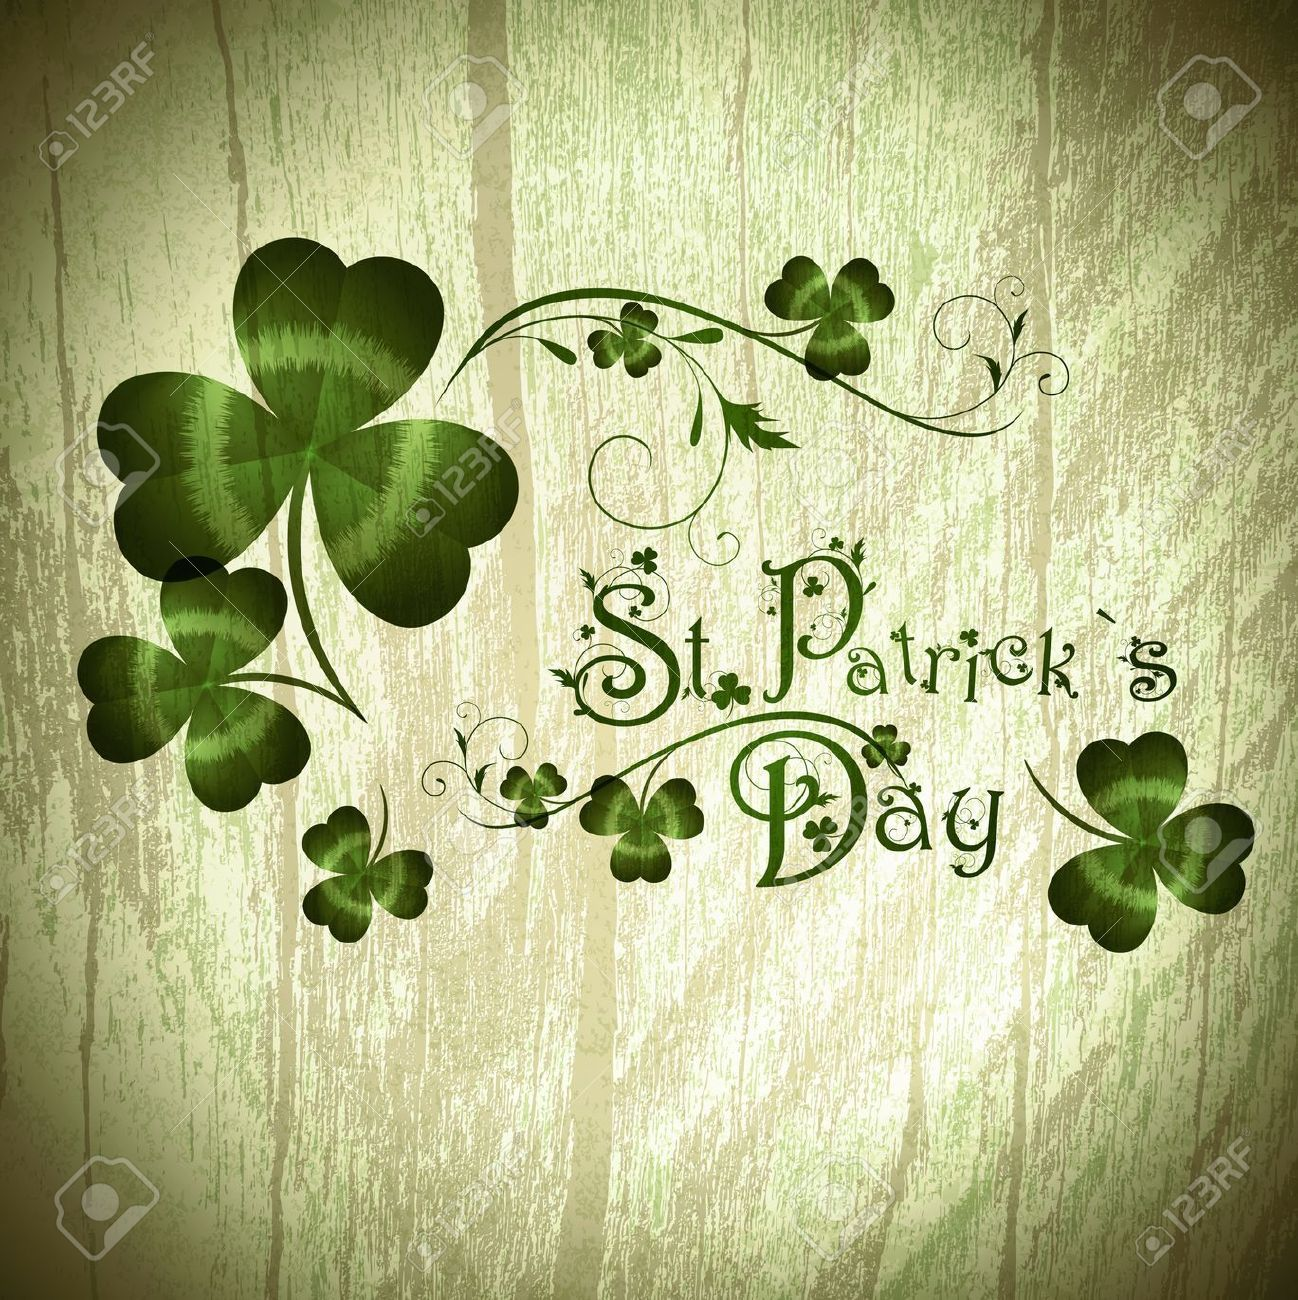 bfe02ec75c58 Vintage Wooden Background With St.Patrick Day Greeting With Shamrocks  Royalty Free Cliparts, Vectors, And Stock Illustration. Pic 13810612.